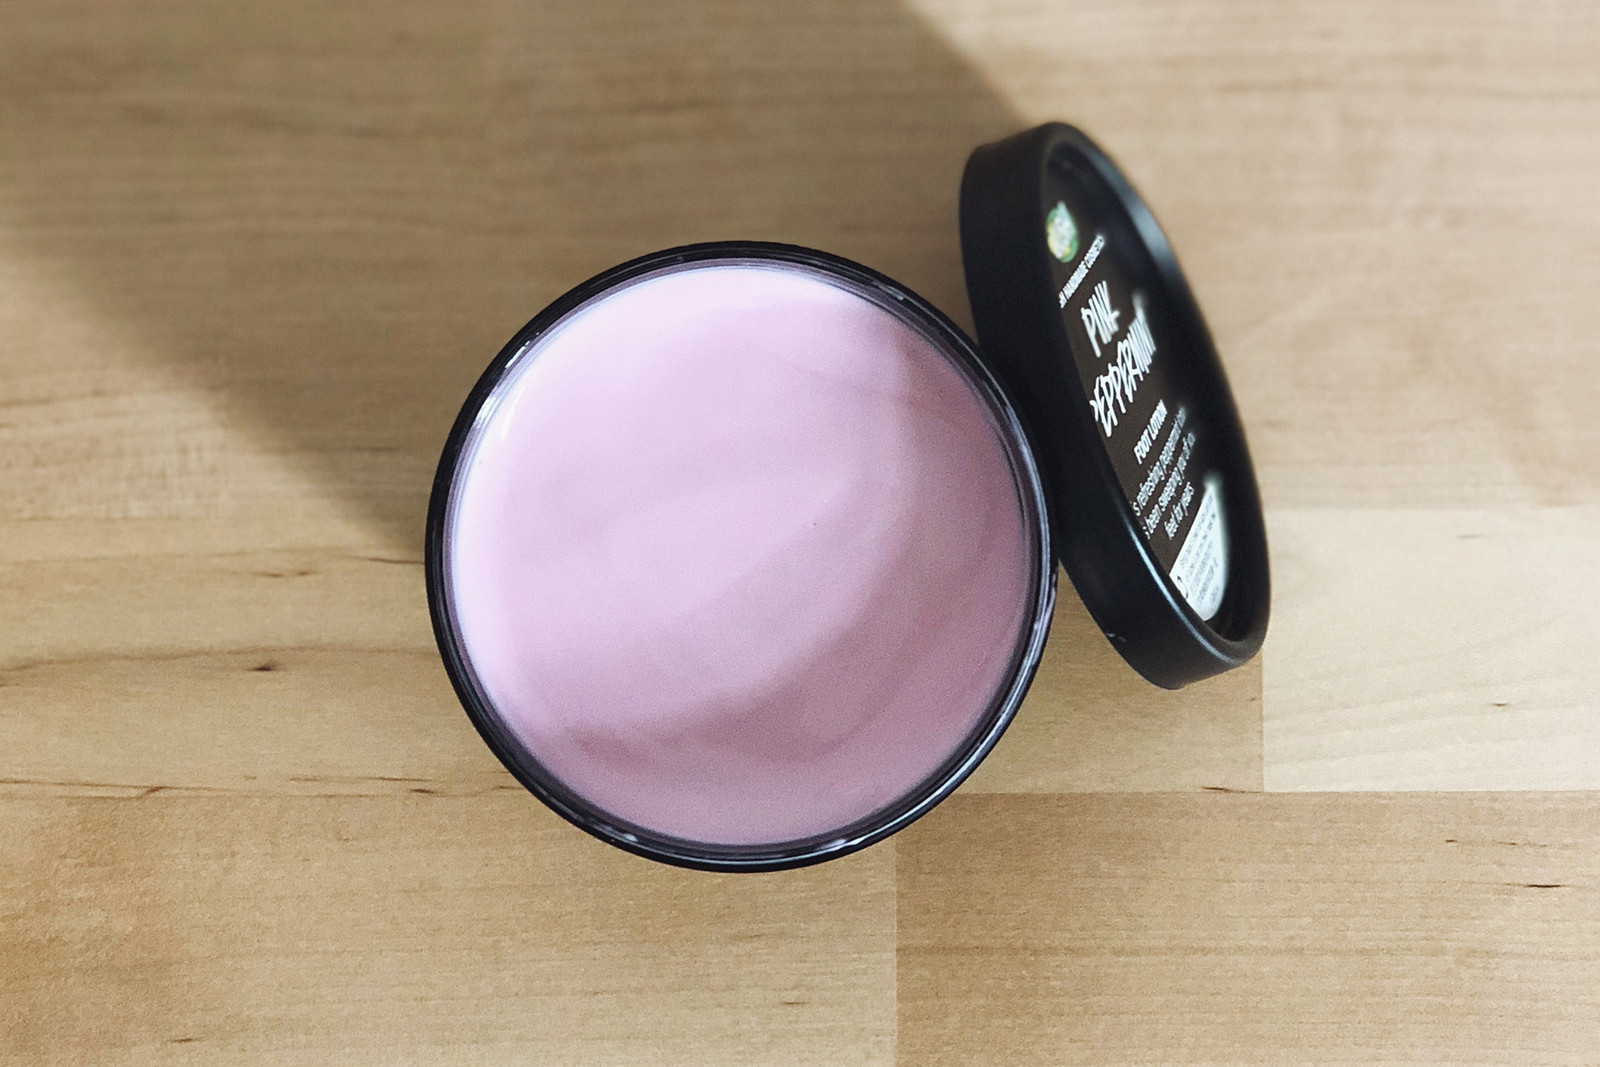 lush cosmetics pink peppermint foot lotion sore feet cracked heels dry winter